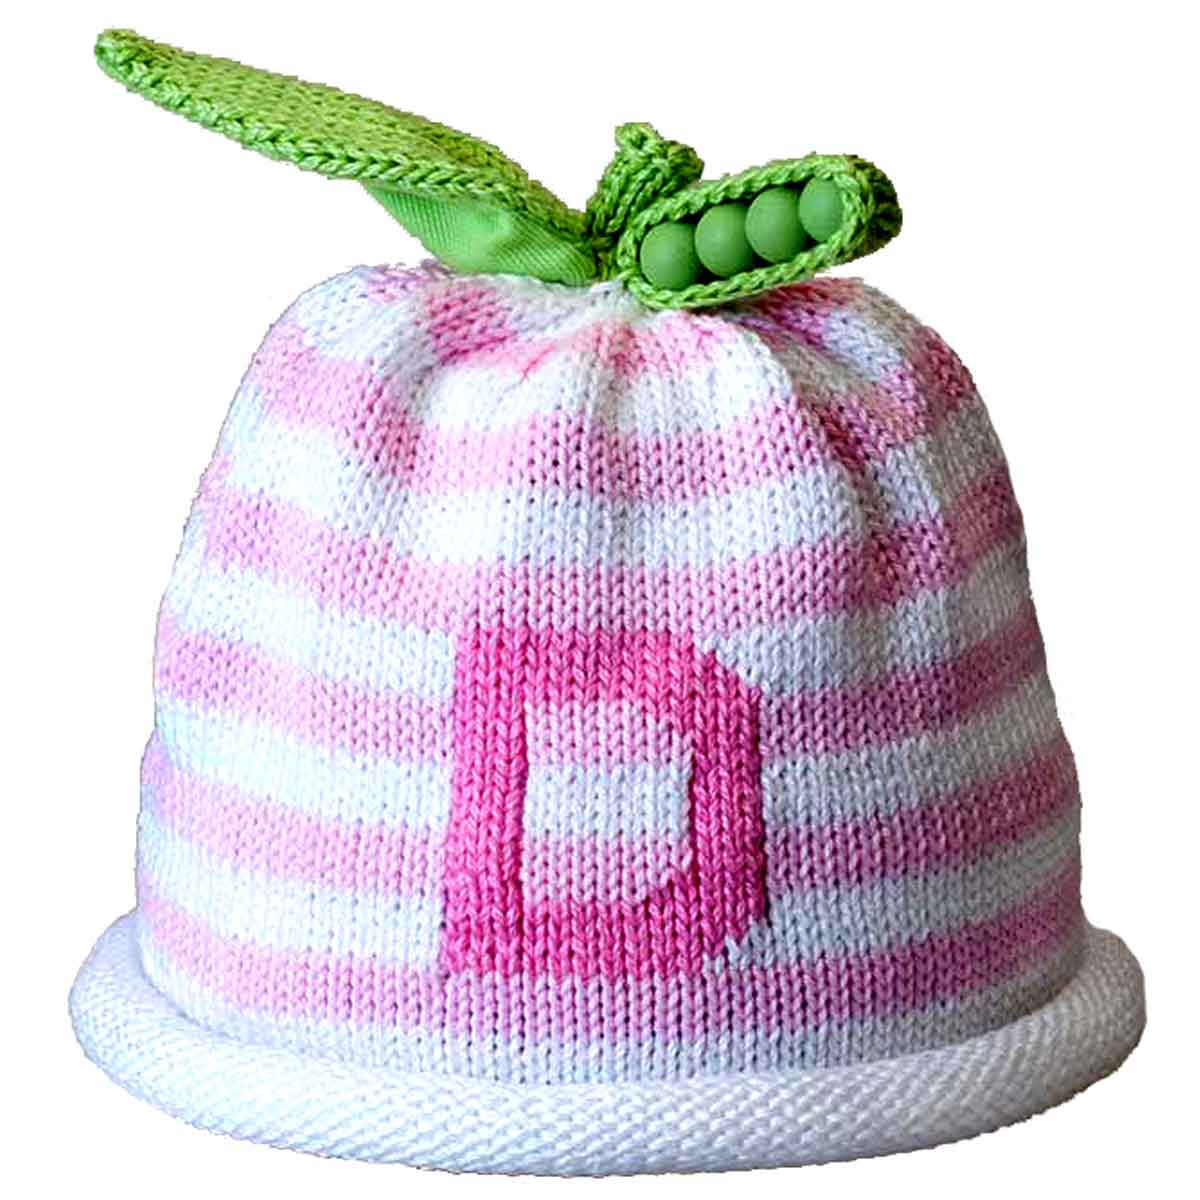 30c8f1d1a3ac1 Personalized Knit Hat - Pink Striped Initial - Margareta Horn Design